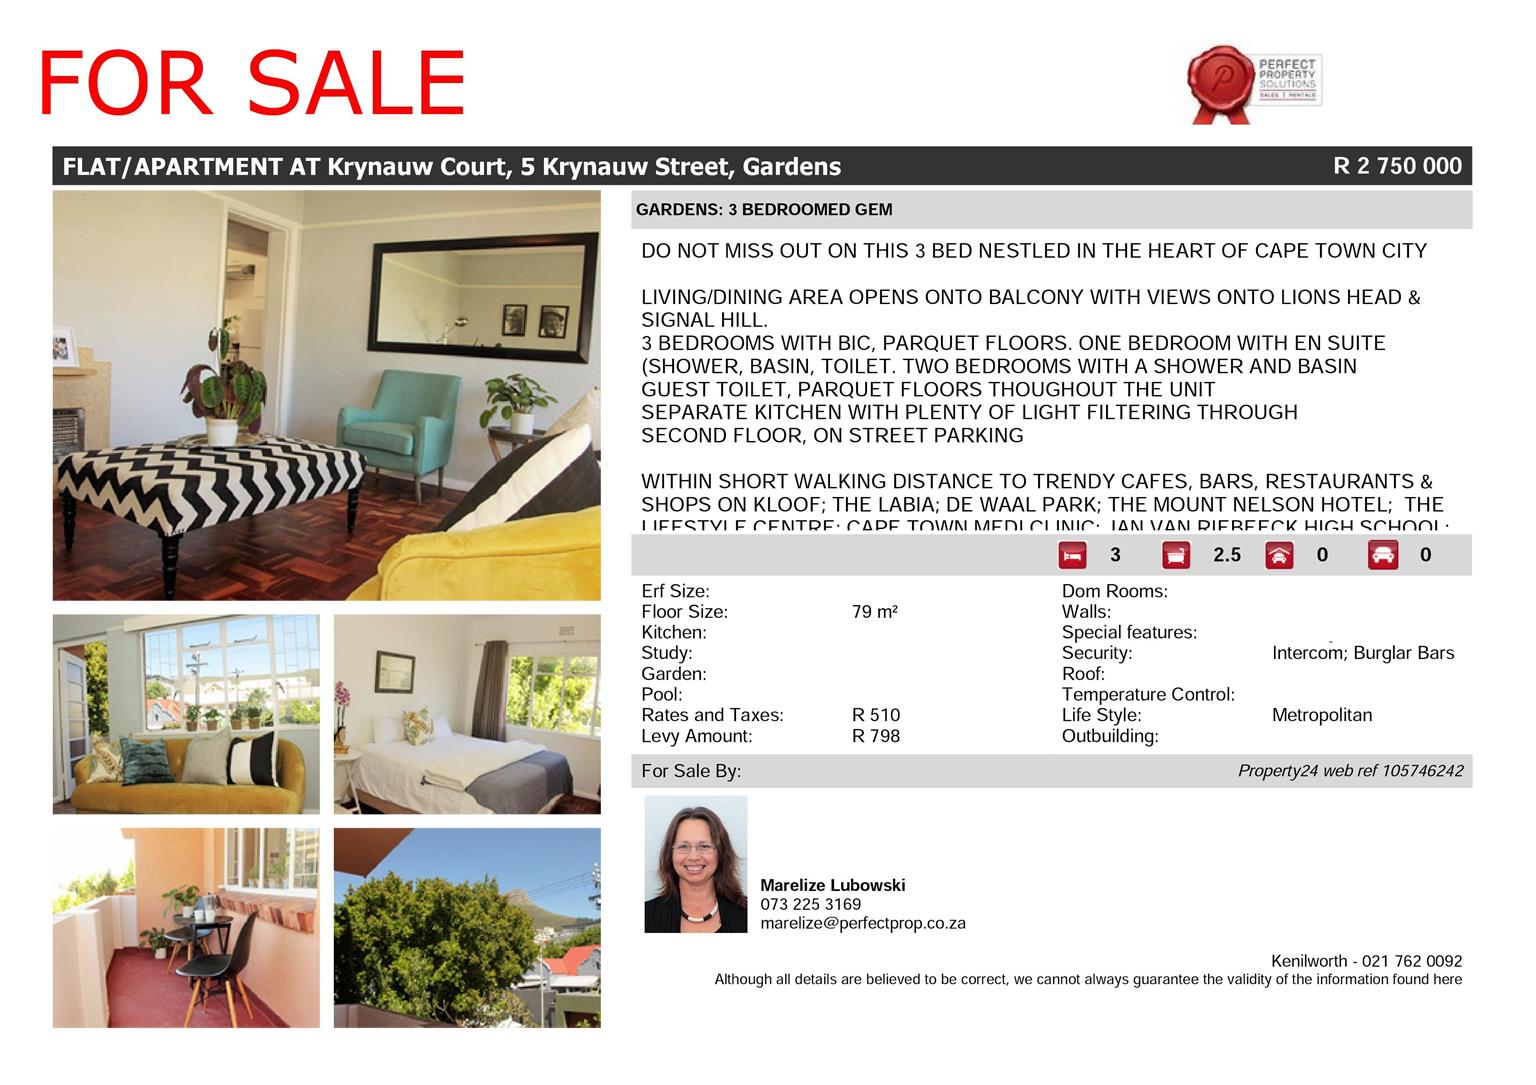 FOR SALE: 3 BED- GARDENS, CAPE TOWN. URBAN LIFESTYLE